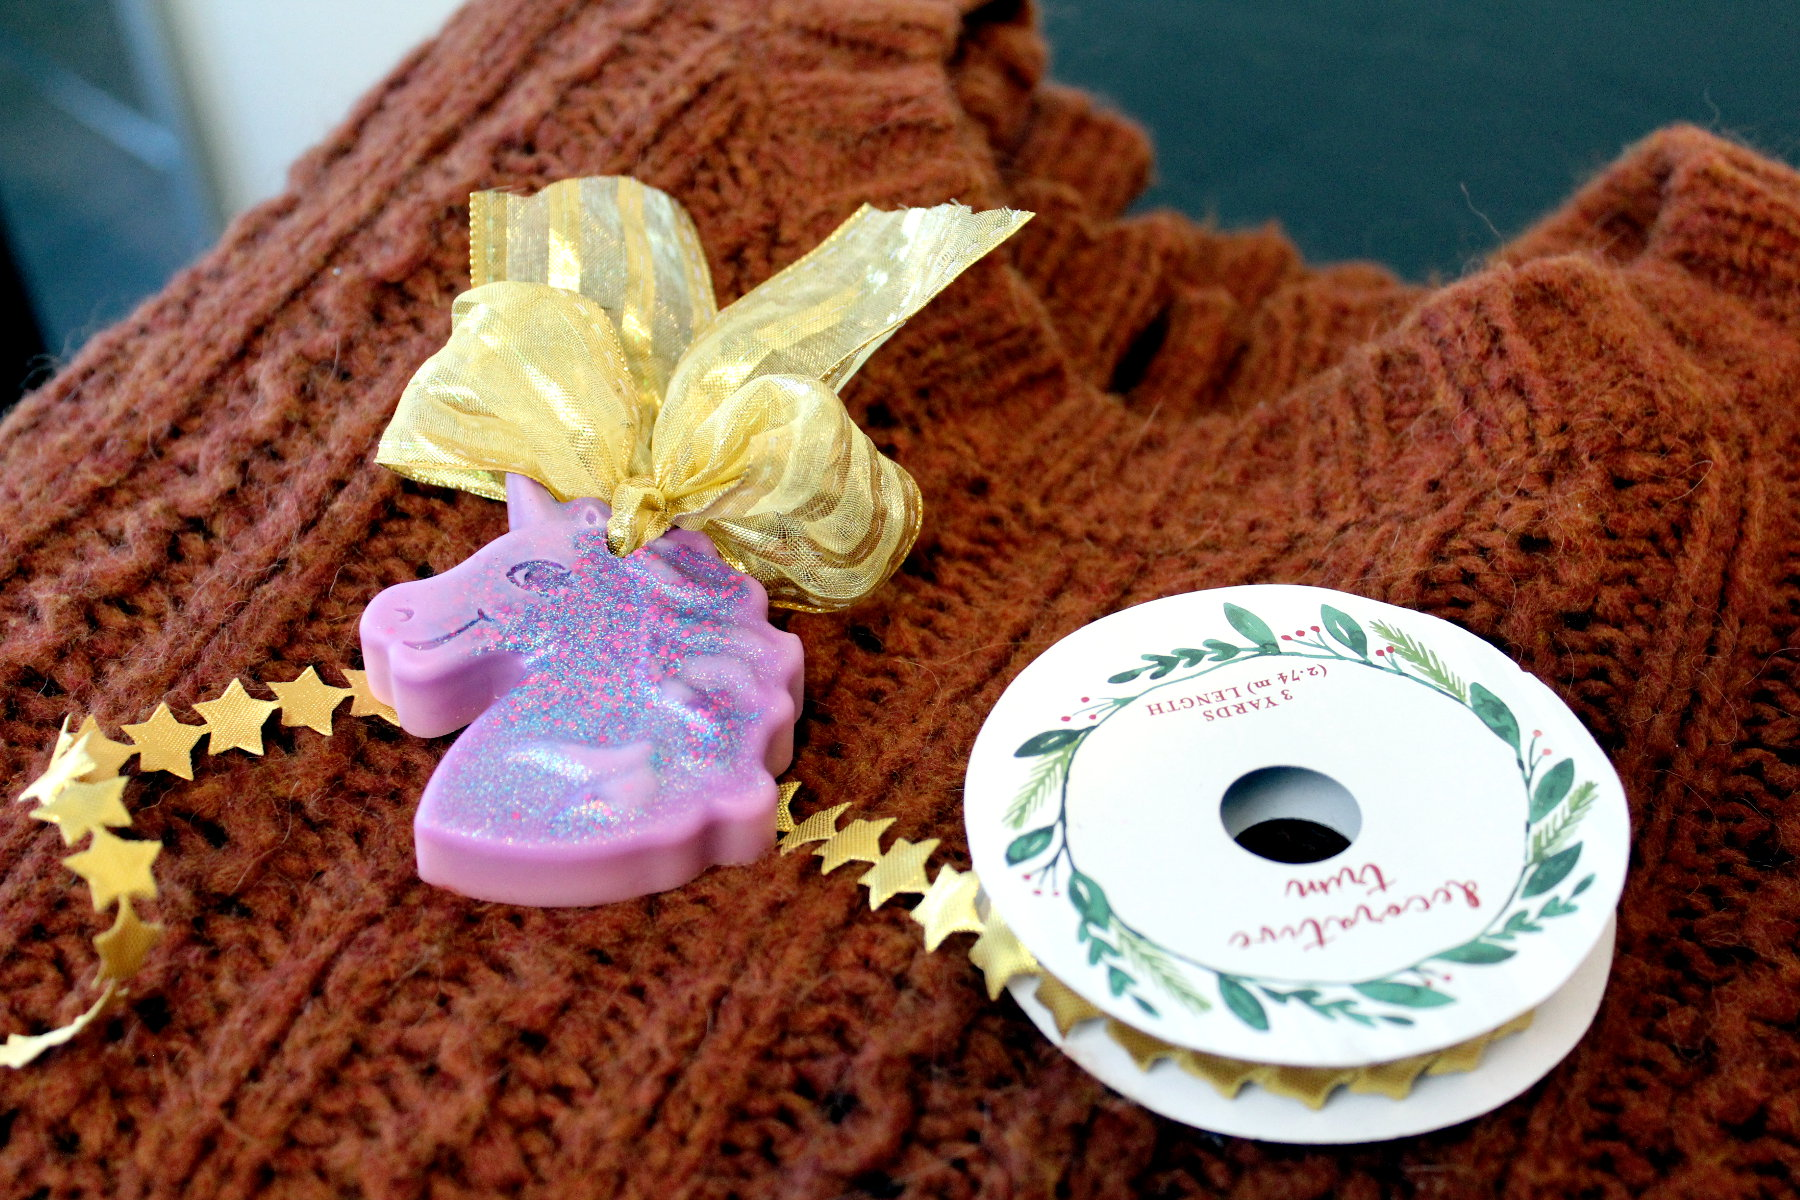 DIY Air Wax Fresheners with Essential Oils - Unicorn Style! Remind your BFFs how magical they are with these unicorn air fresheners for Galentine's Day. Scented with natural essential oils, these unicorn wax air fresheners are perfect for musty closets or to use as drawer sachets. Or hang them in a sunny kitchen window. These DIY air fresheners are super easy to make. They're also the perfect reminder that we DO sparkle every single day! #airfresheners #unicorns #diy